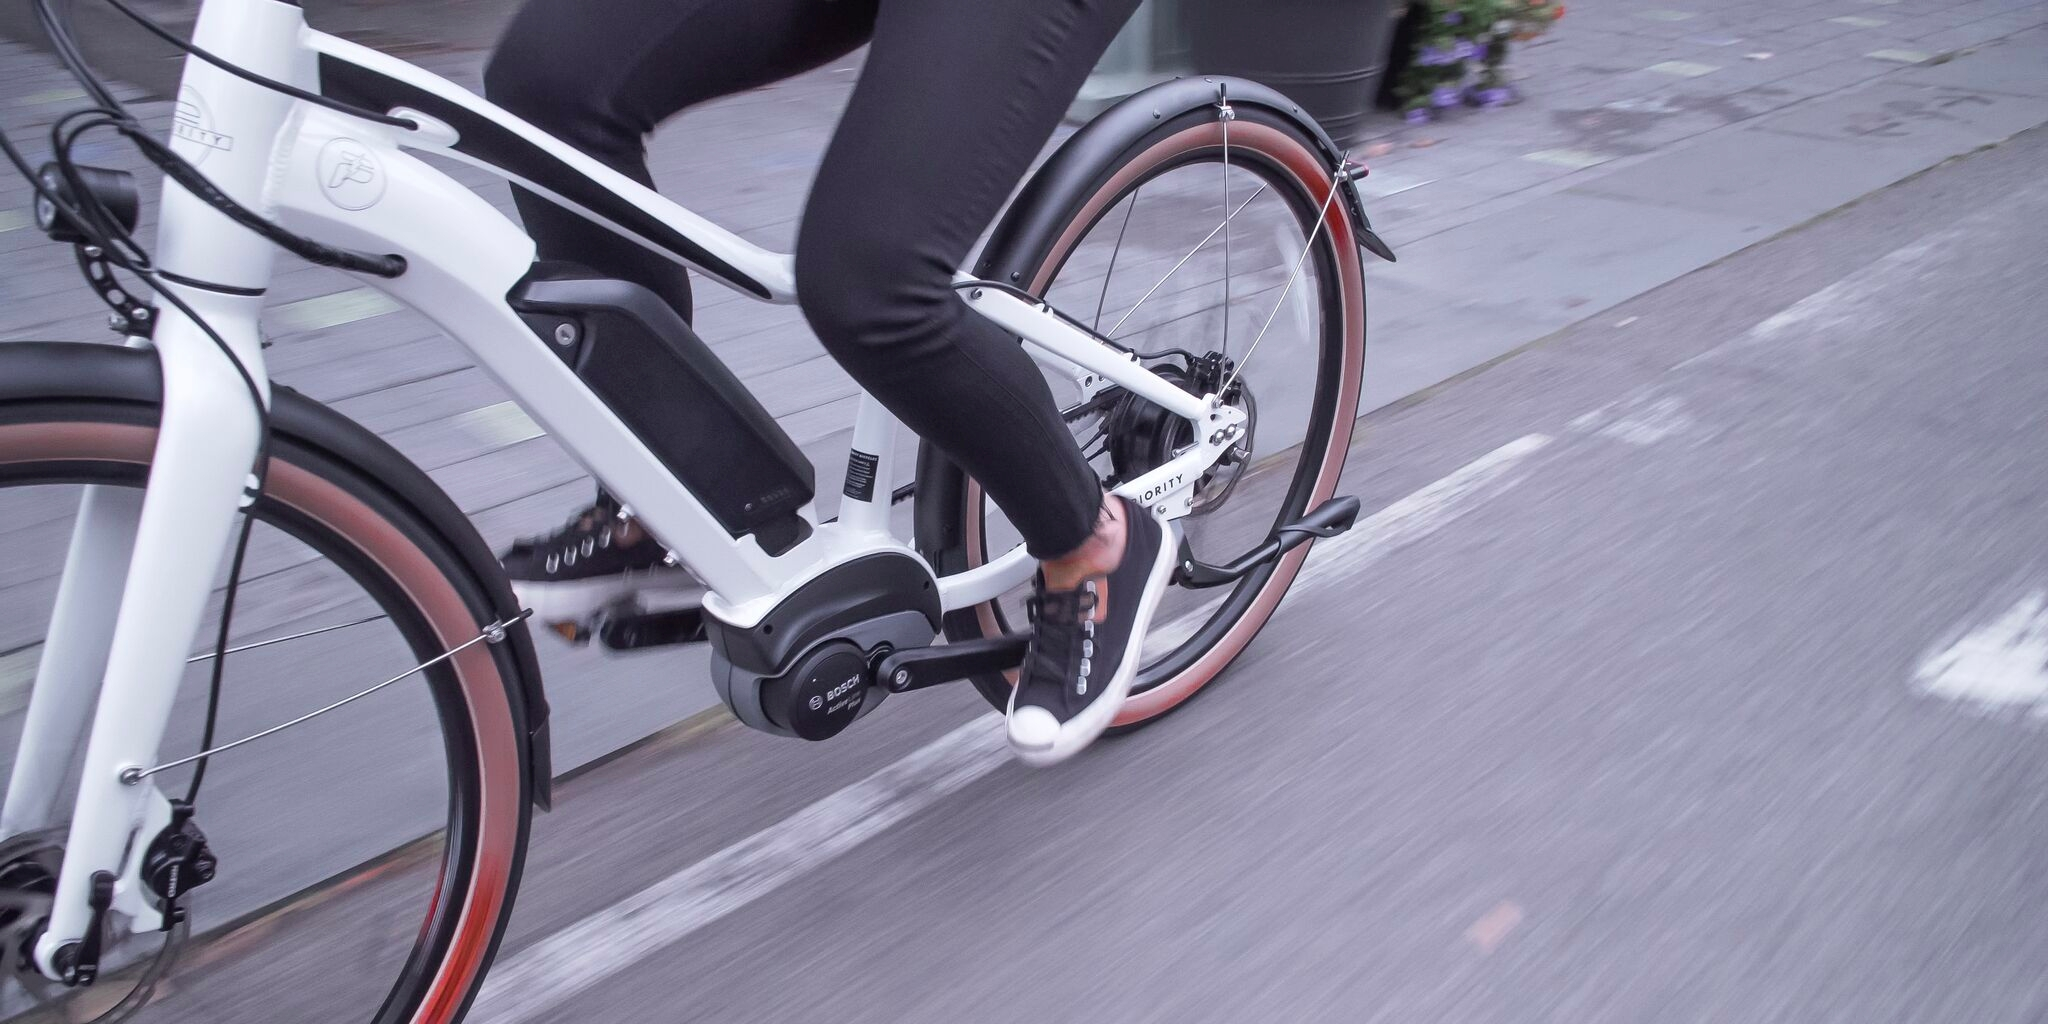 New Priority Embark electric bicycle features Bosch powered belt driven CVT